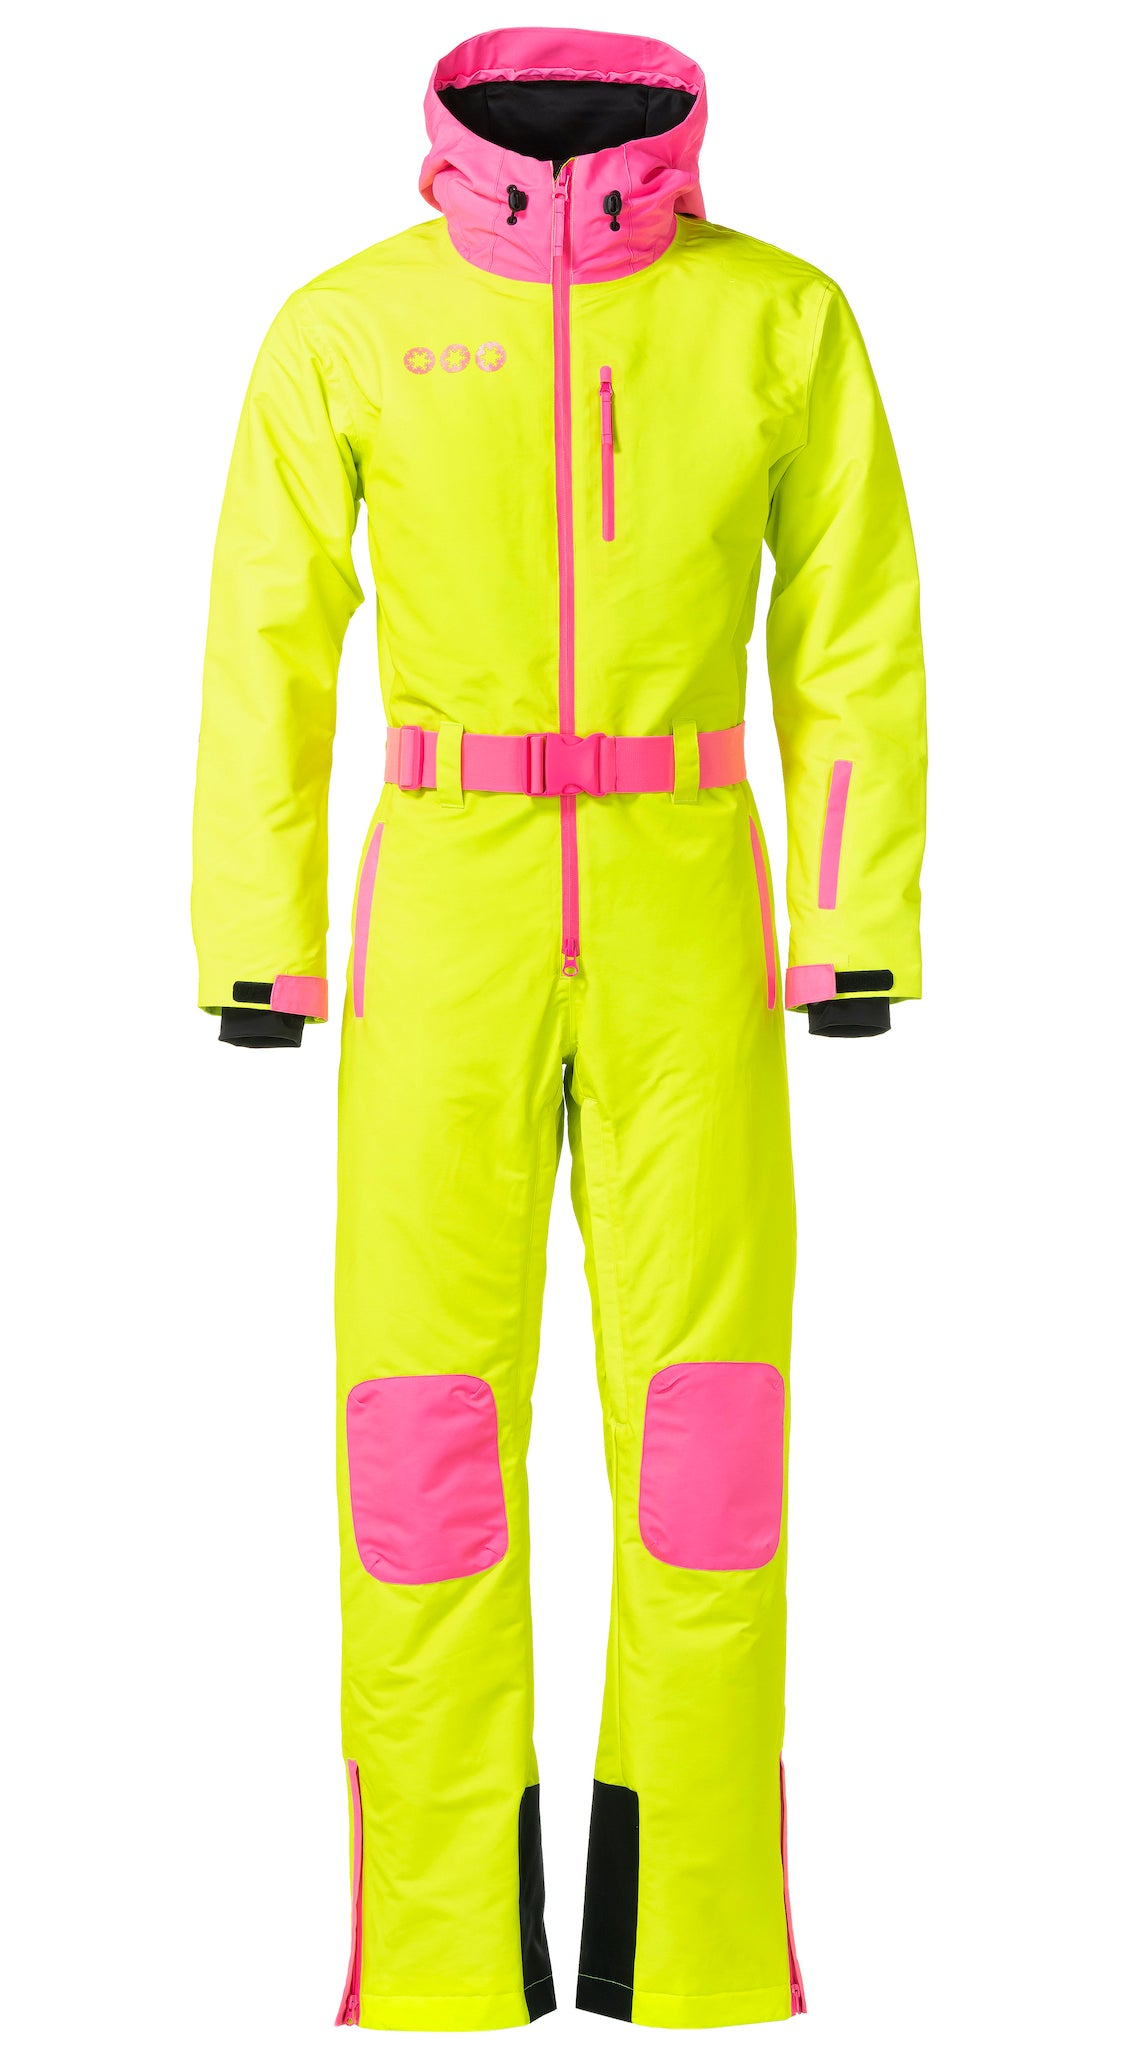 Rhubarb and Custard | Unisex Ski Suit - Willyfinder